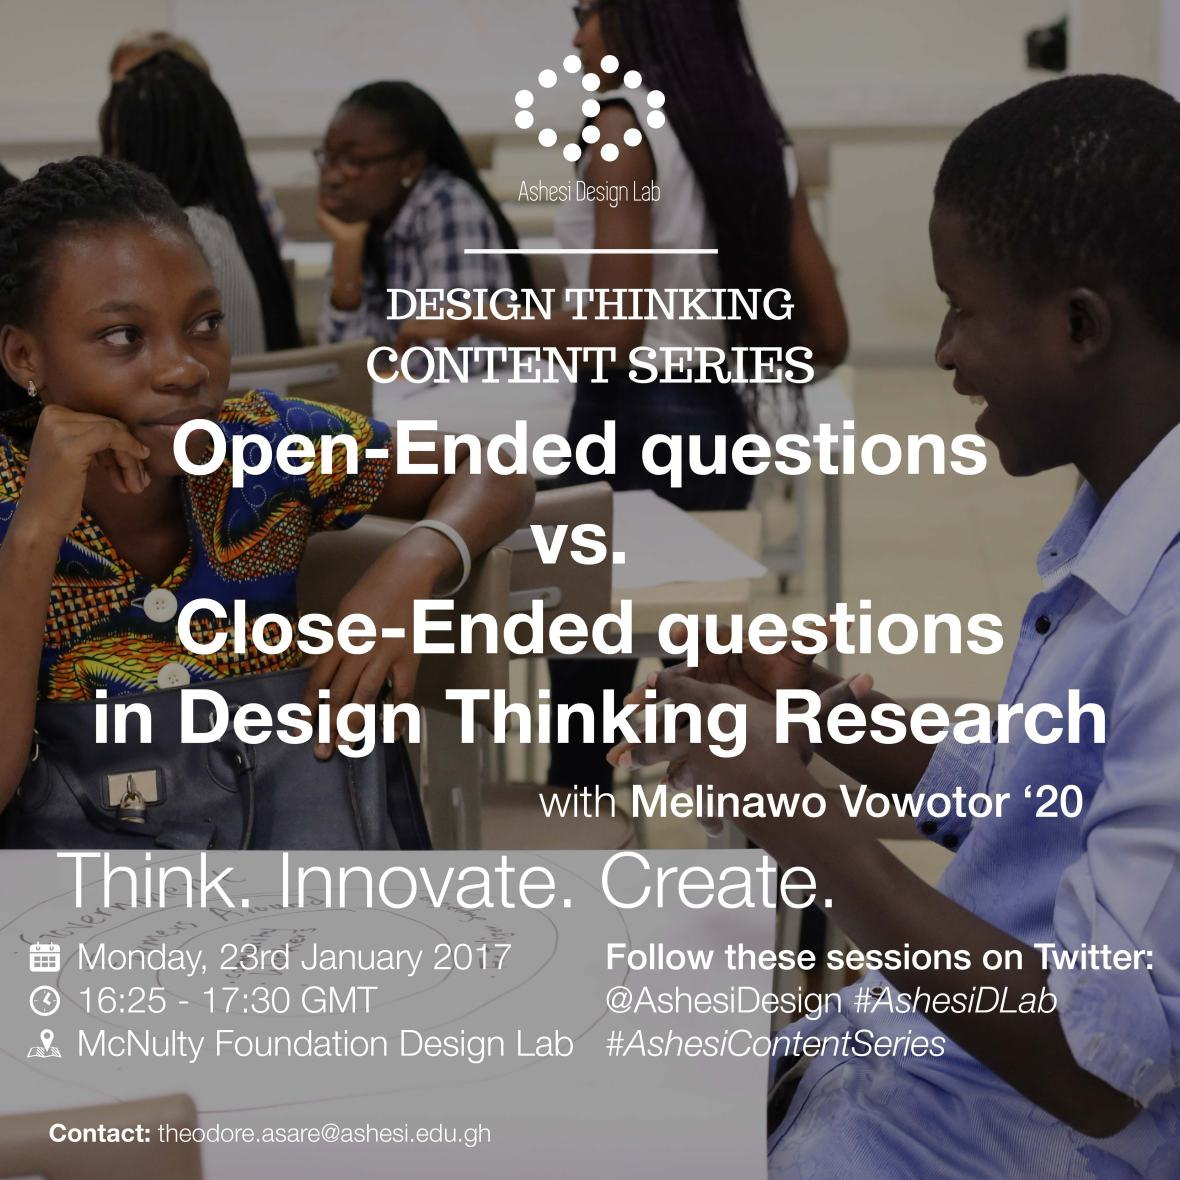 ashesi-dlab-content-series-open-vs-closed-ended-questions-01